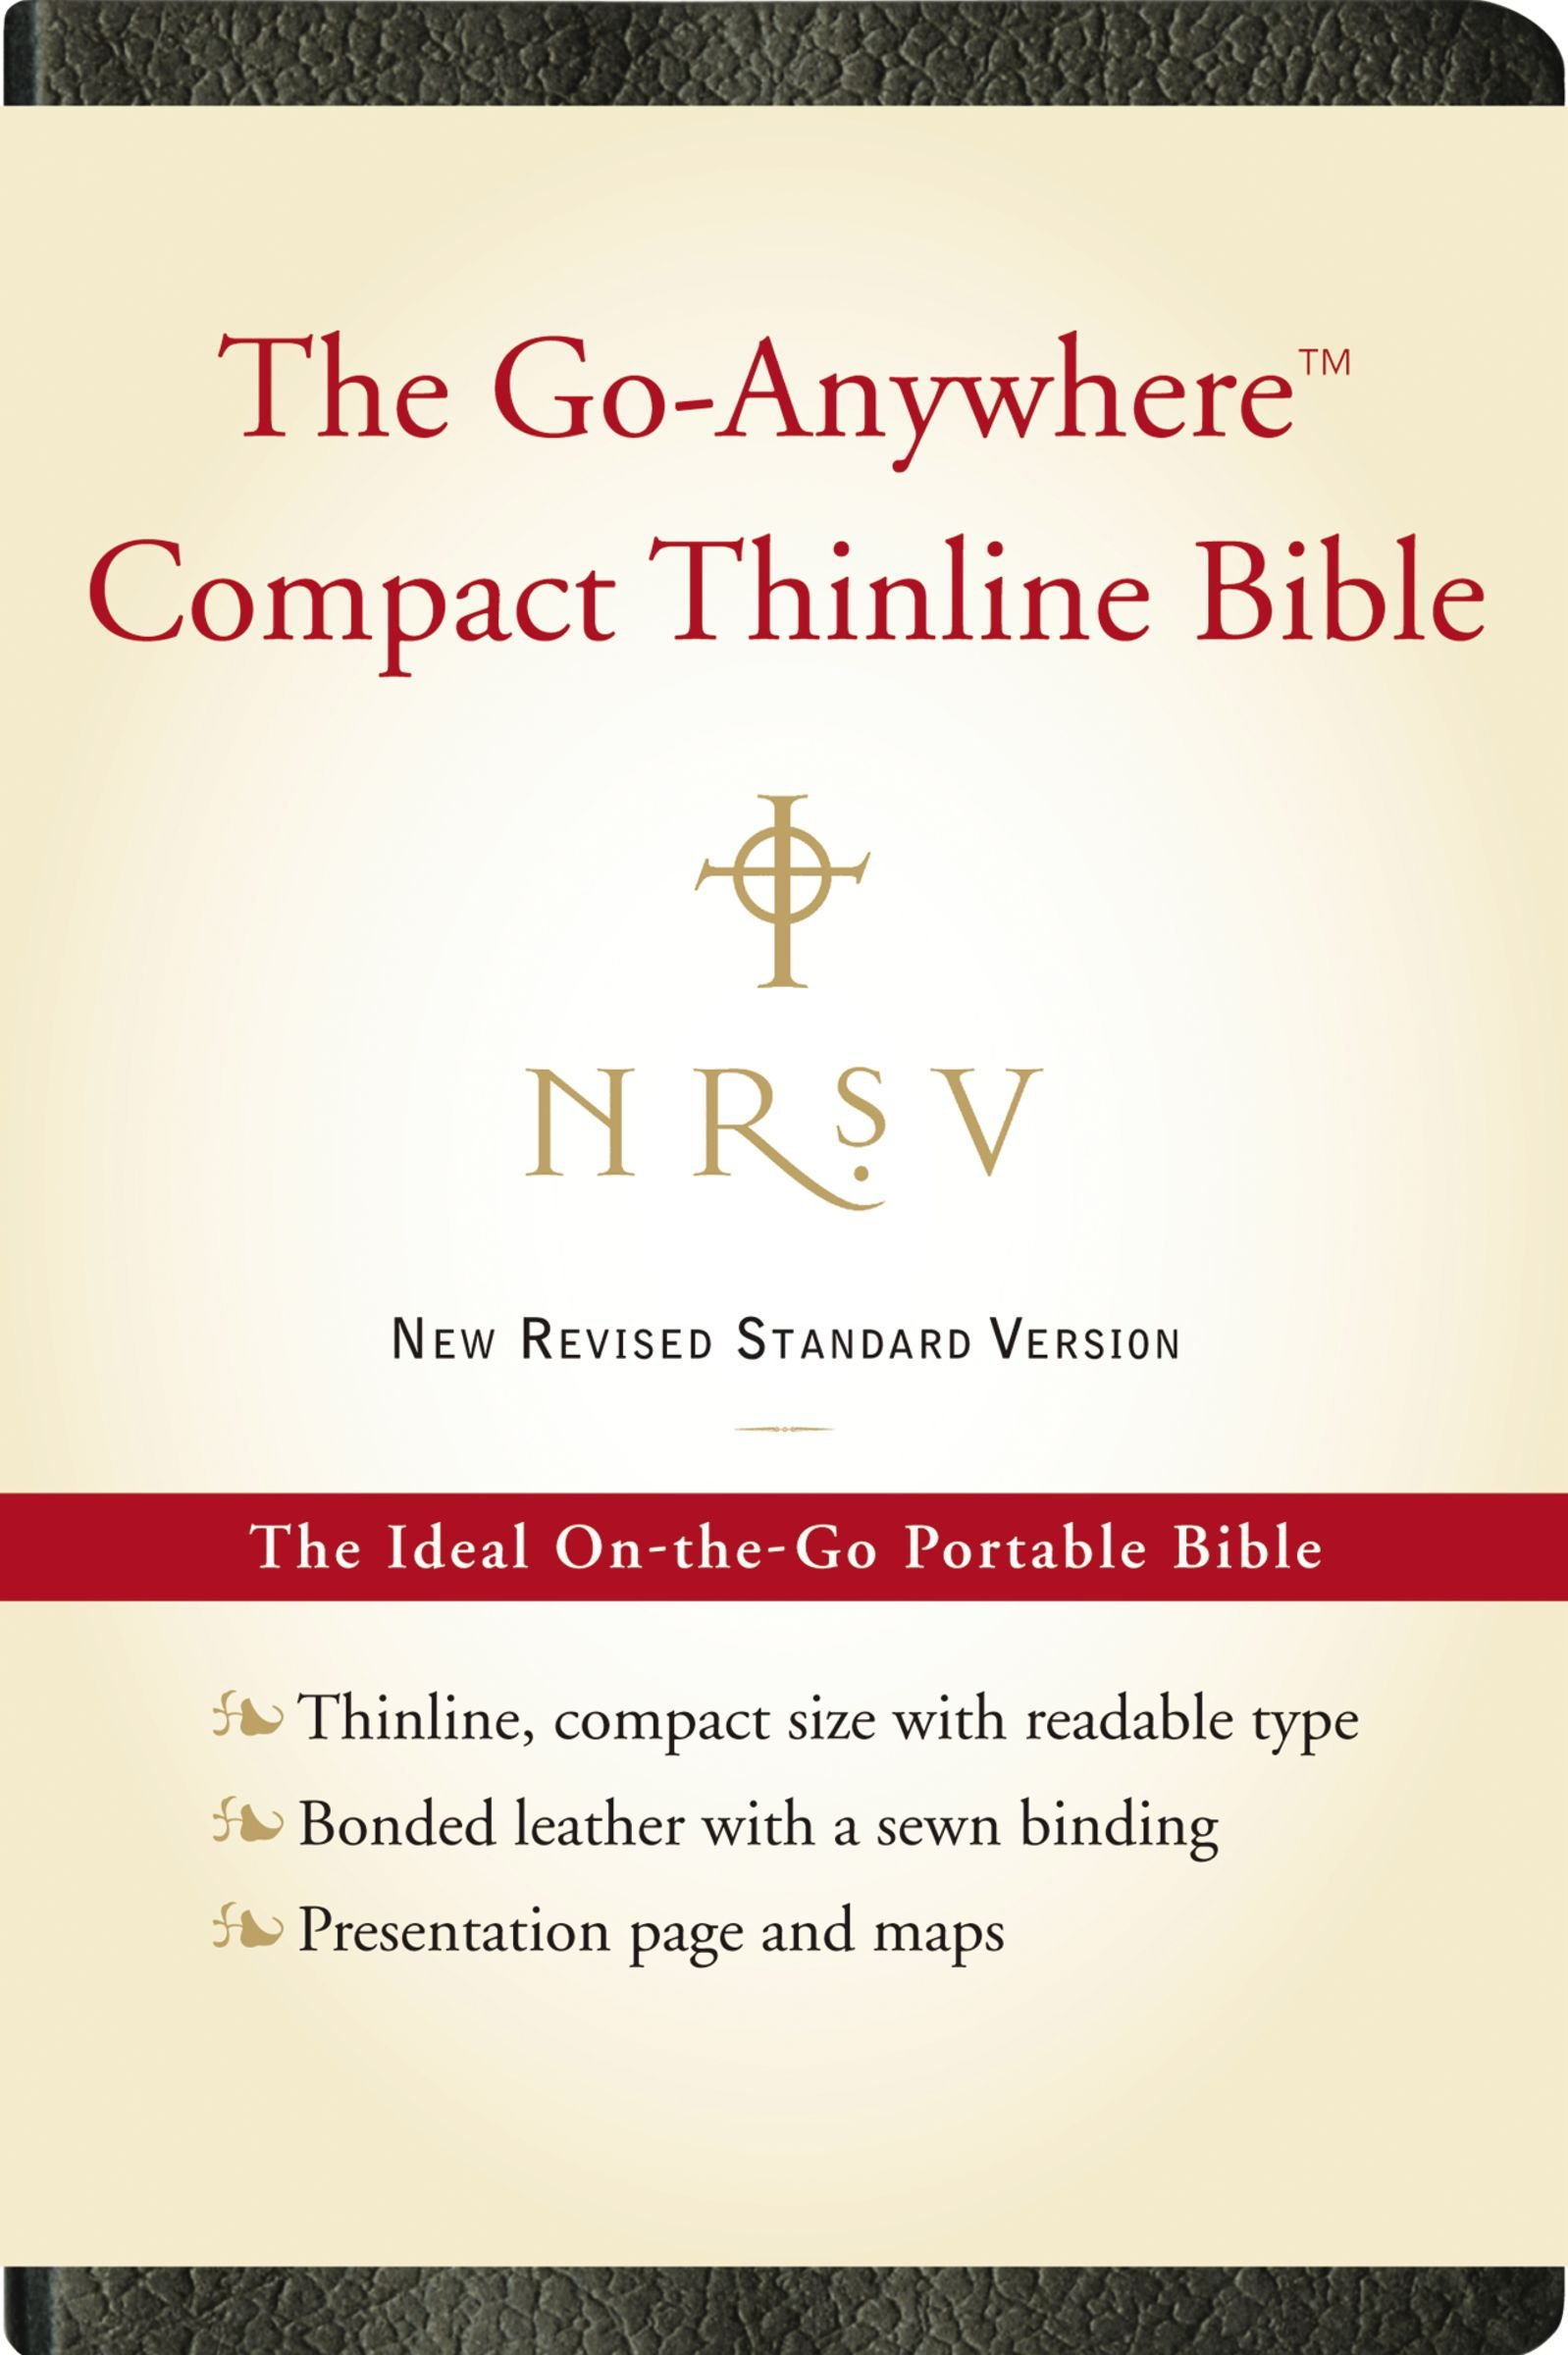 Download NRSV, The Go-Anywhere Compact Thinline Bible, Bonded Leather, Black: The Ideal On-the-Go Portable Bible ebook